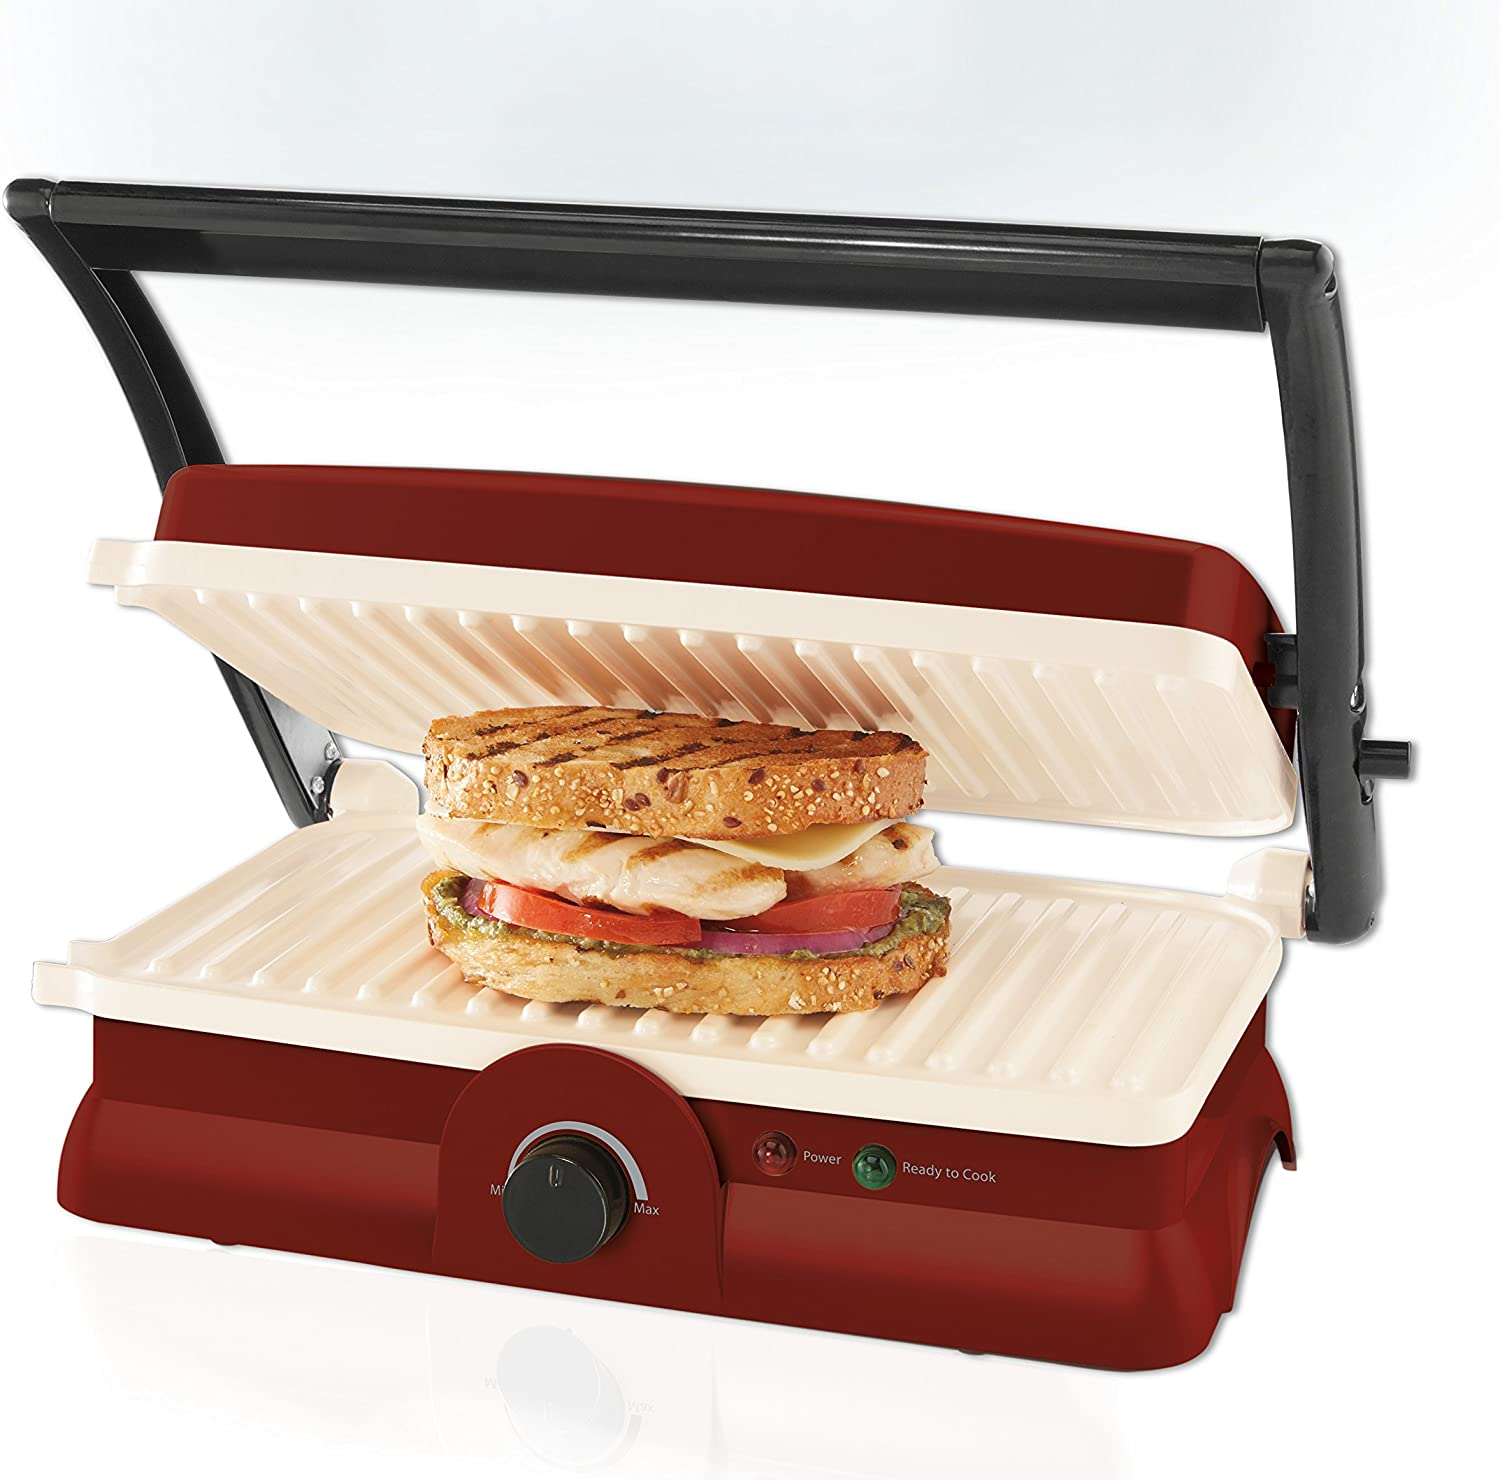 Oster DuraCeramic Panini Maker and Grill, Candy Apple Red